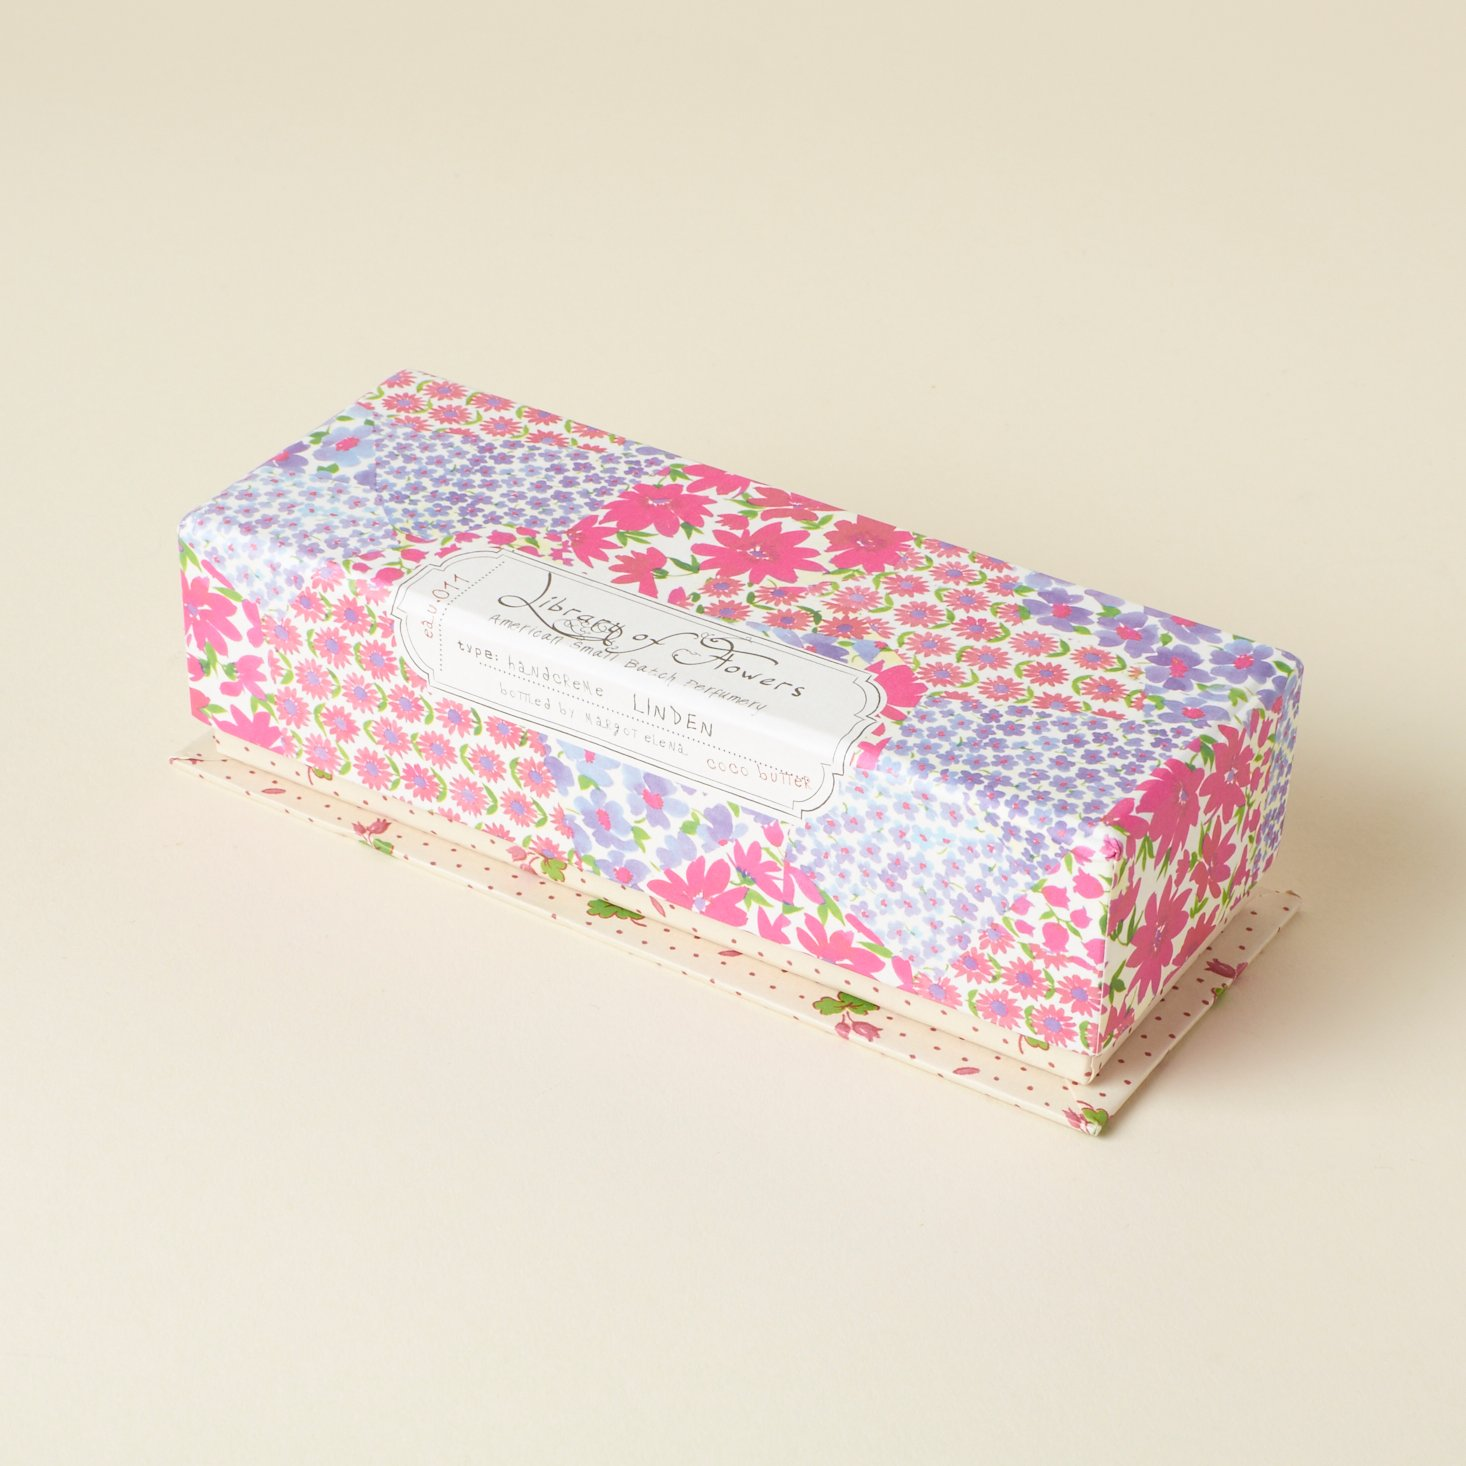 birchbox-good-as-gold-limited-edition-box-november-2016-0018